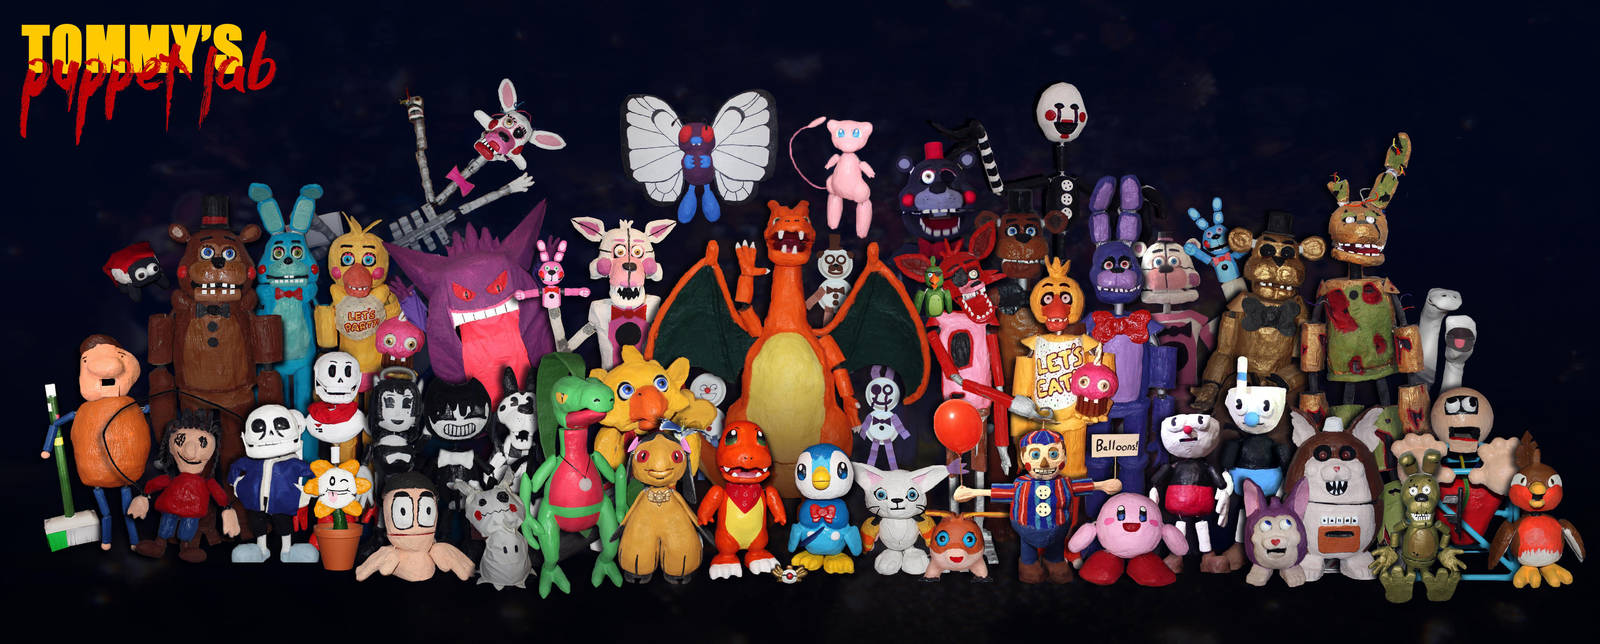 My Puppet Family (all hand crafted) by TommyGK